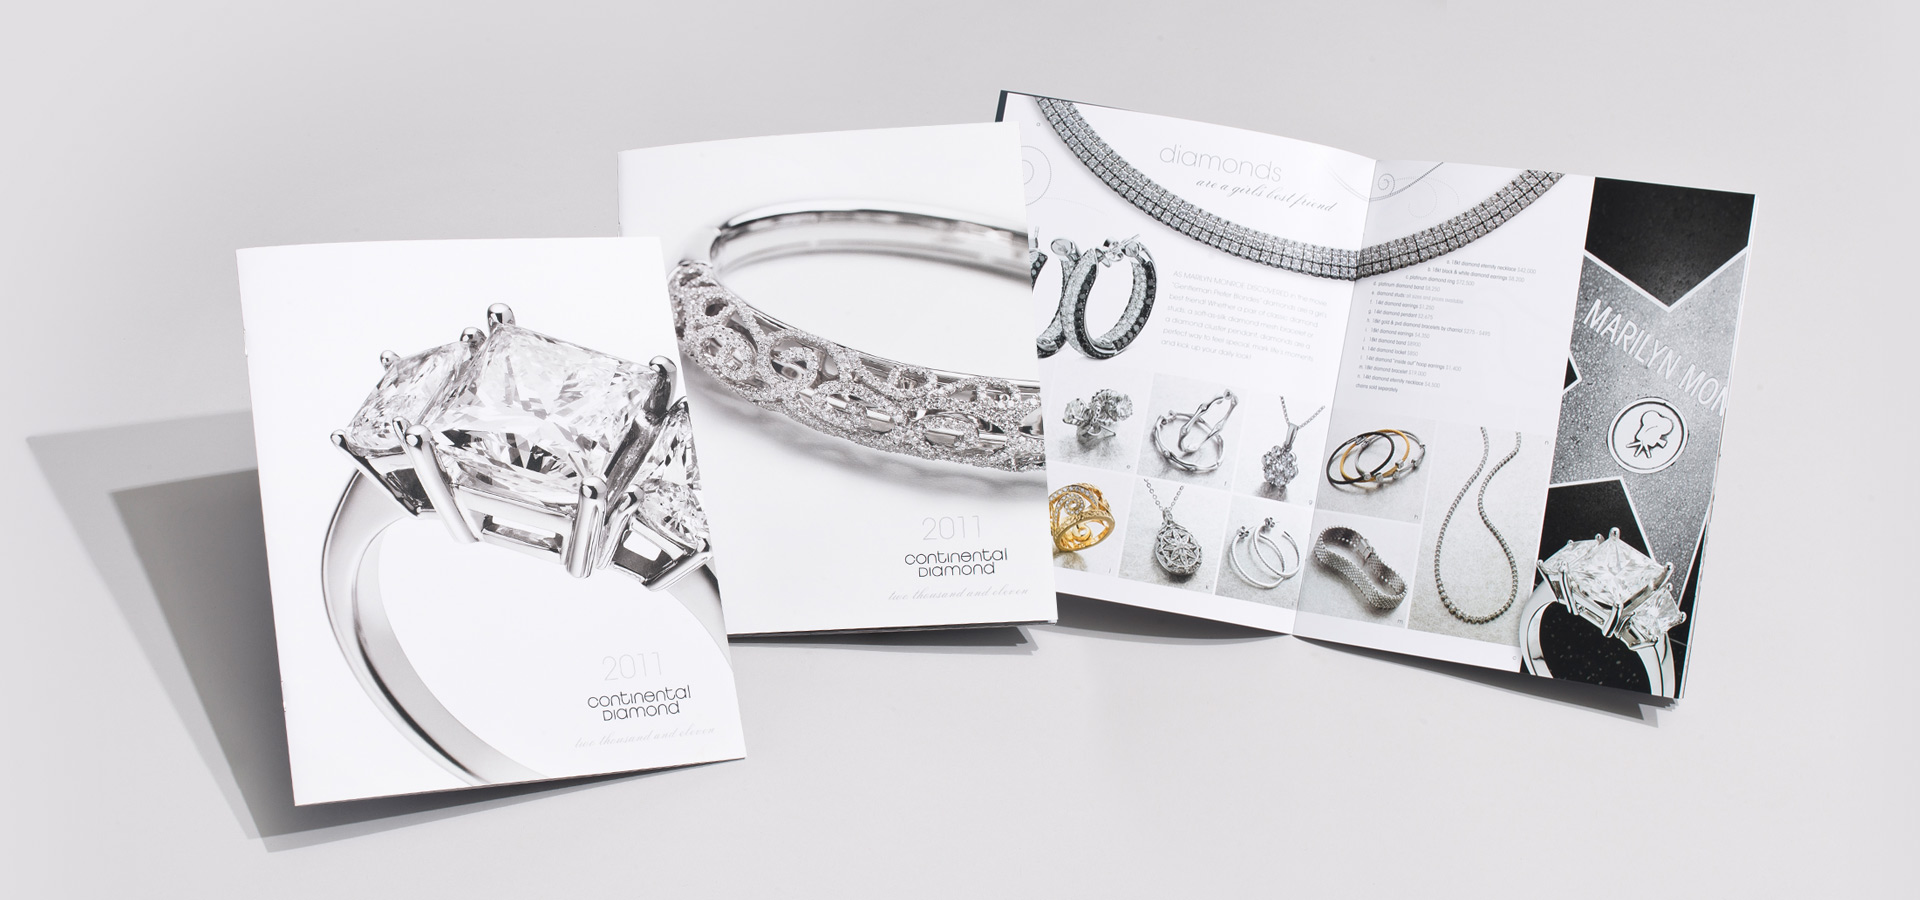 continental diamond catalog covers and spread